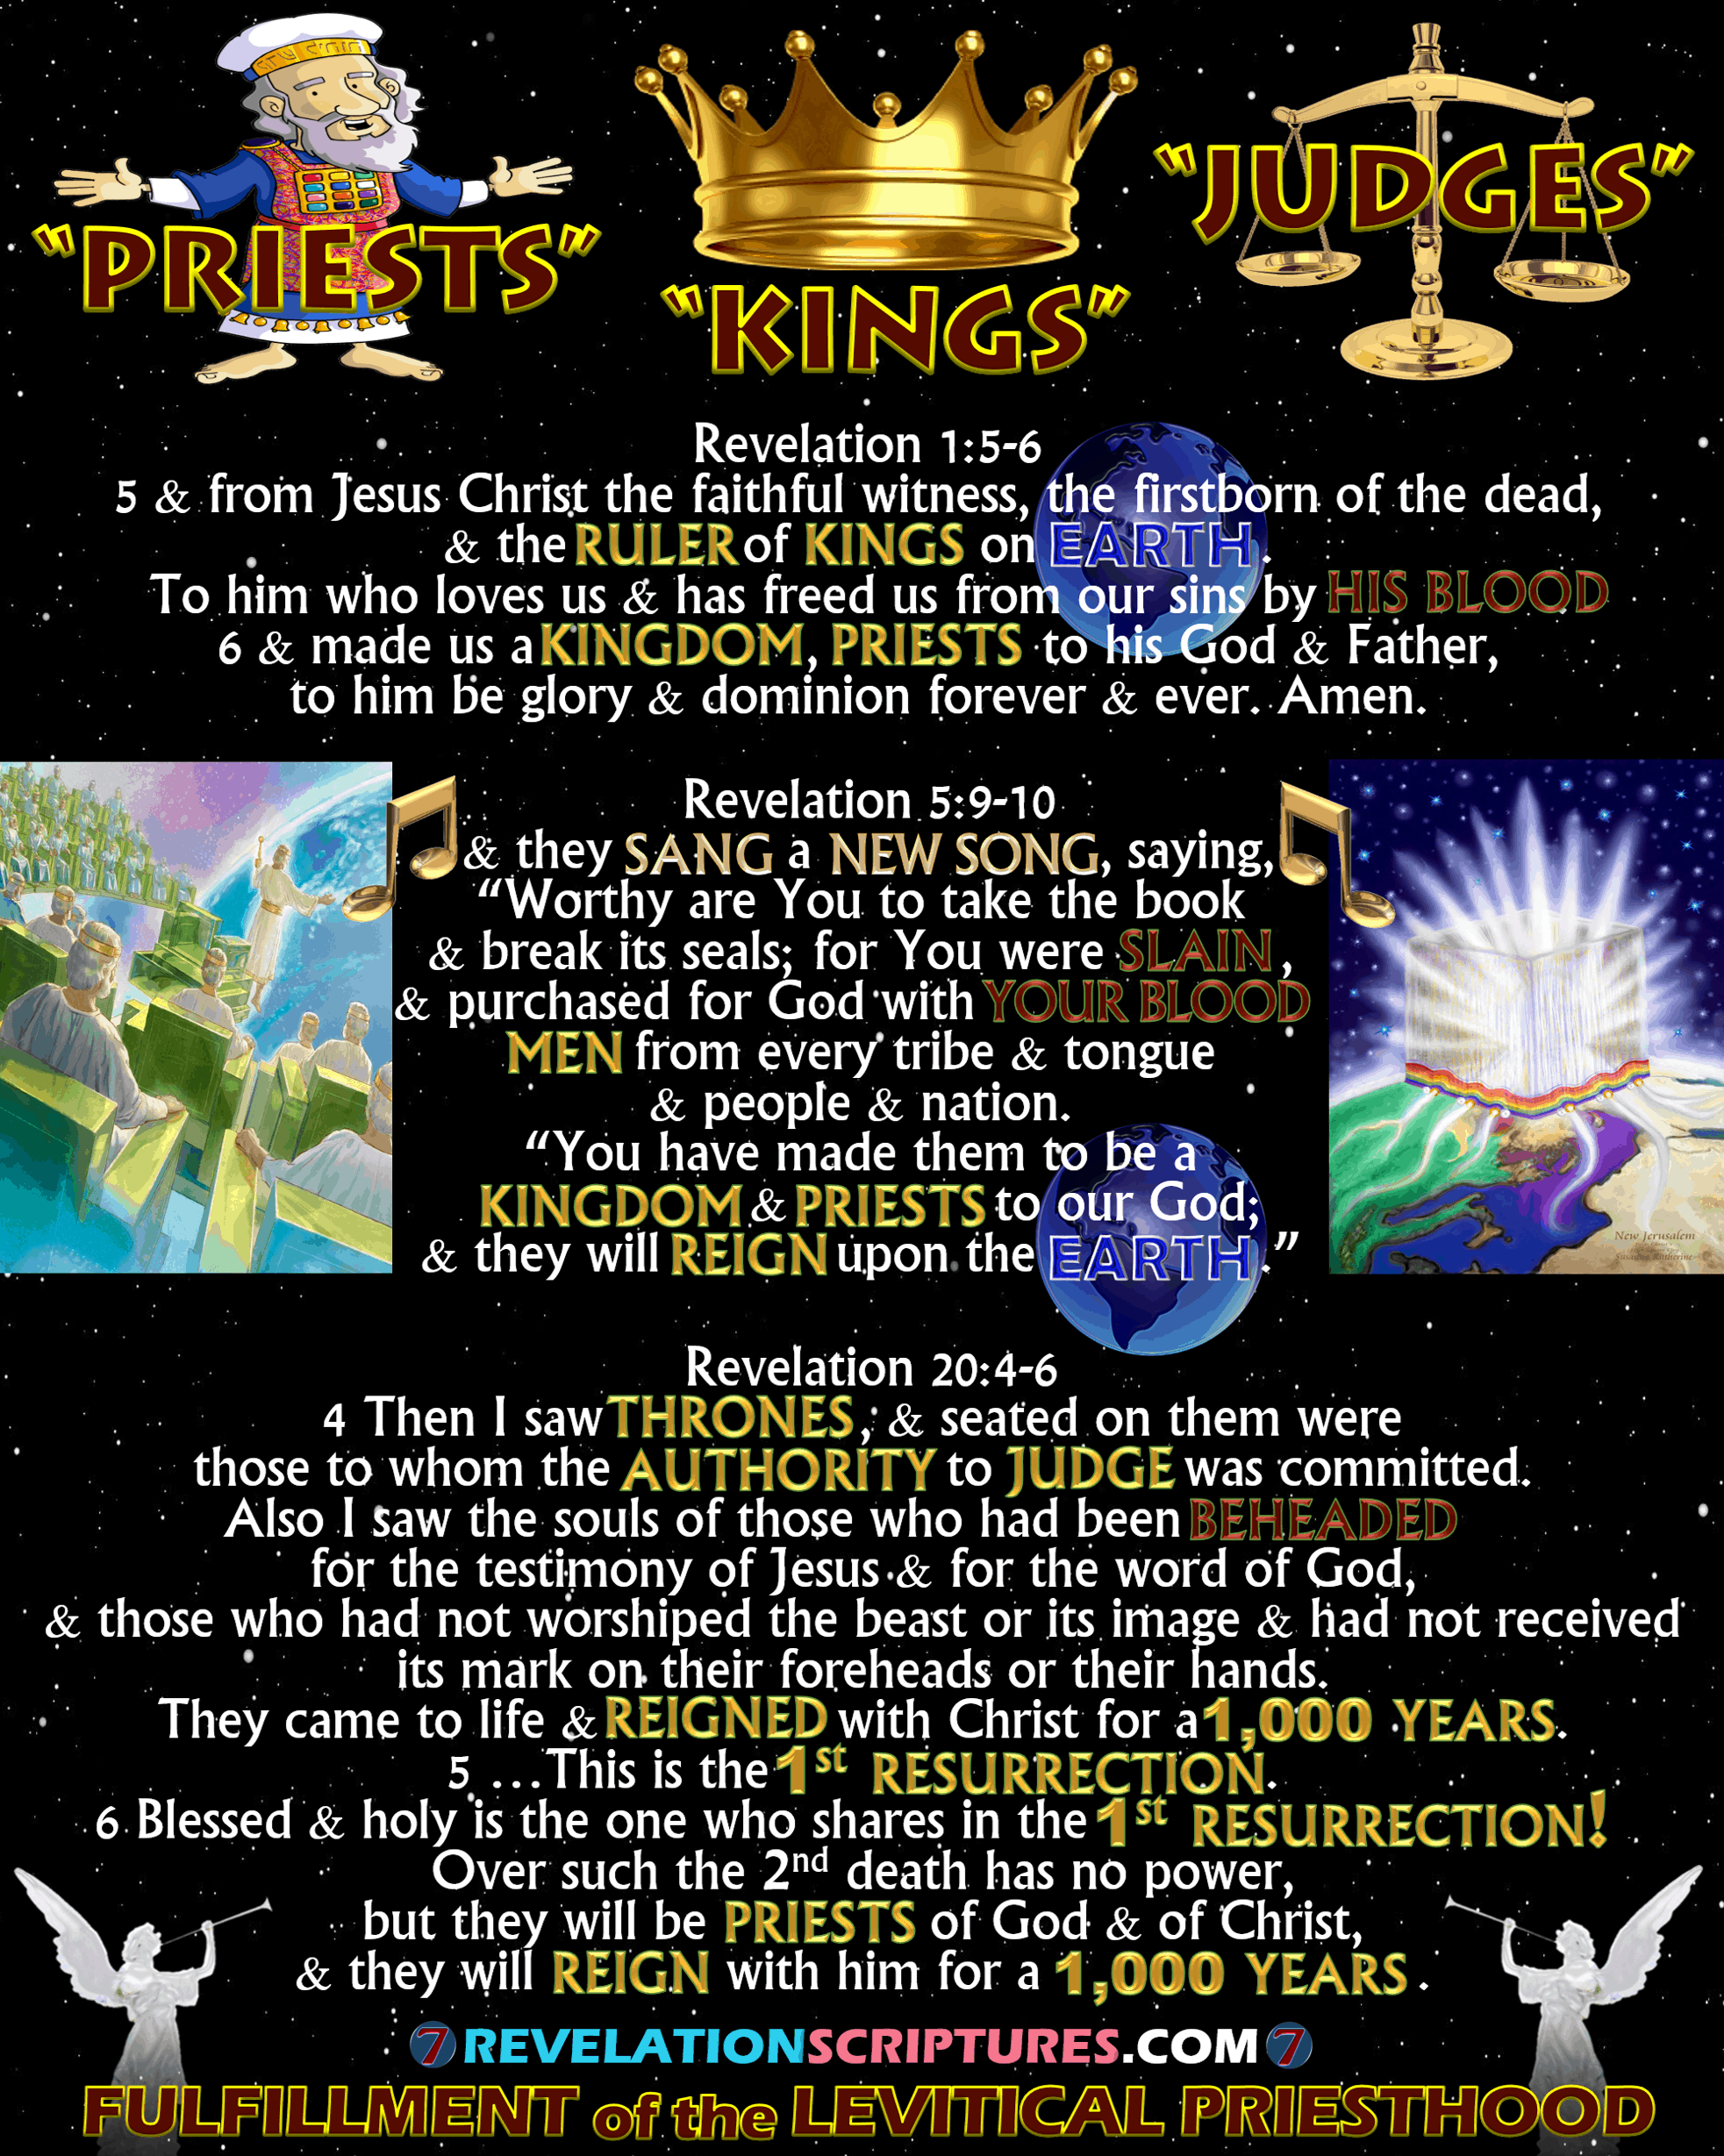 Priests,kings,judges,priest,king,judge,ruler of Kings on earth,revelation 1:5,Revelation 1:6,kingdom,priests to God,sang,new song,blood,slain,reign on the earth,thrones,authority to judge,earth,beheaded,beast,image mark,1000 years,thousand years,1st resurrection,first resurrection,2nd death second death,priests of God & Christ,fulfillment of levitical priesthood,levy priests,new Jerusalem,144000